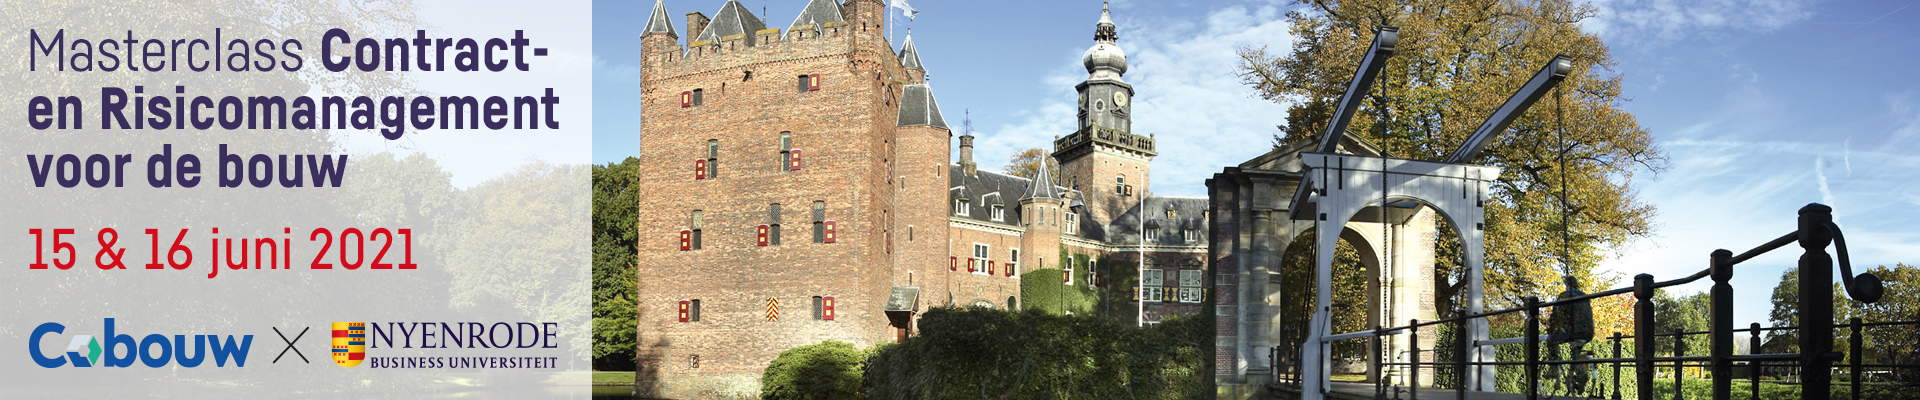 Nyenrode Contract-en risicomanagement voorjaar 2021